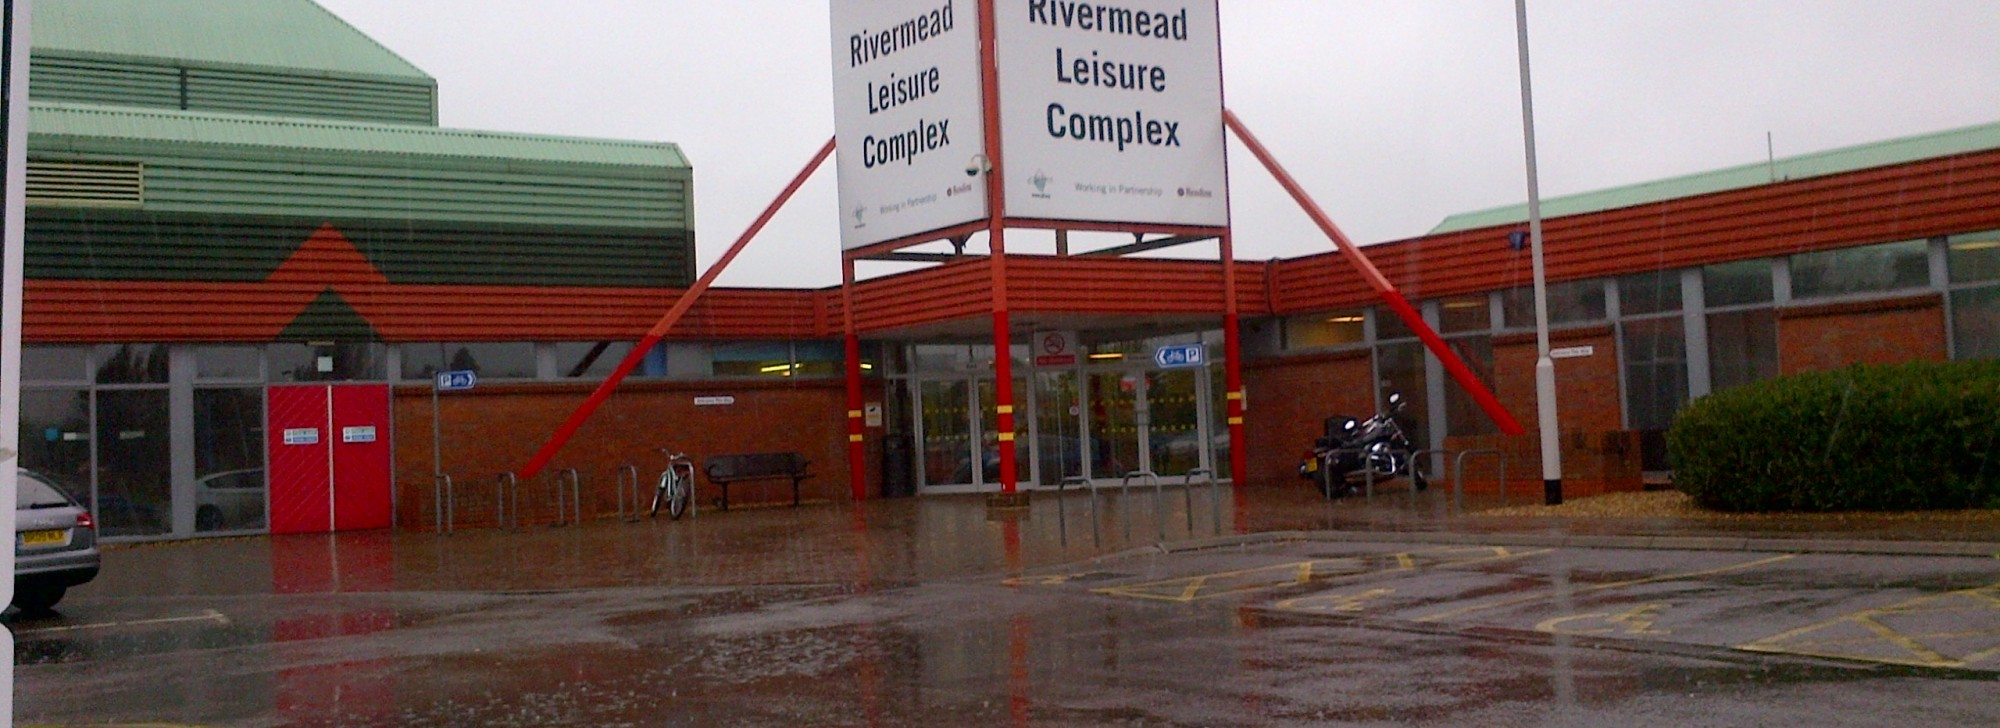 rivermead leisure complex 2